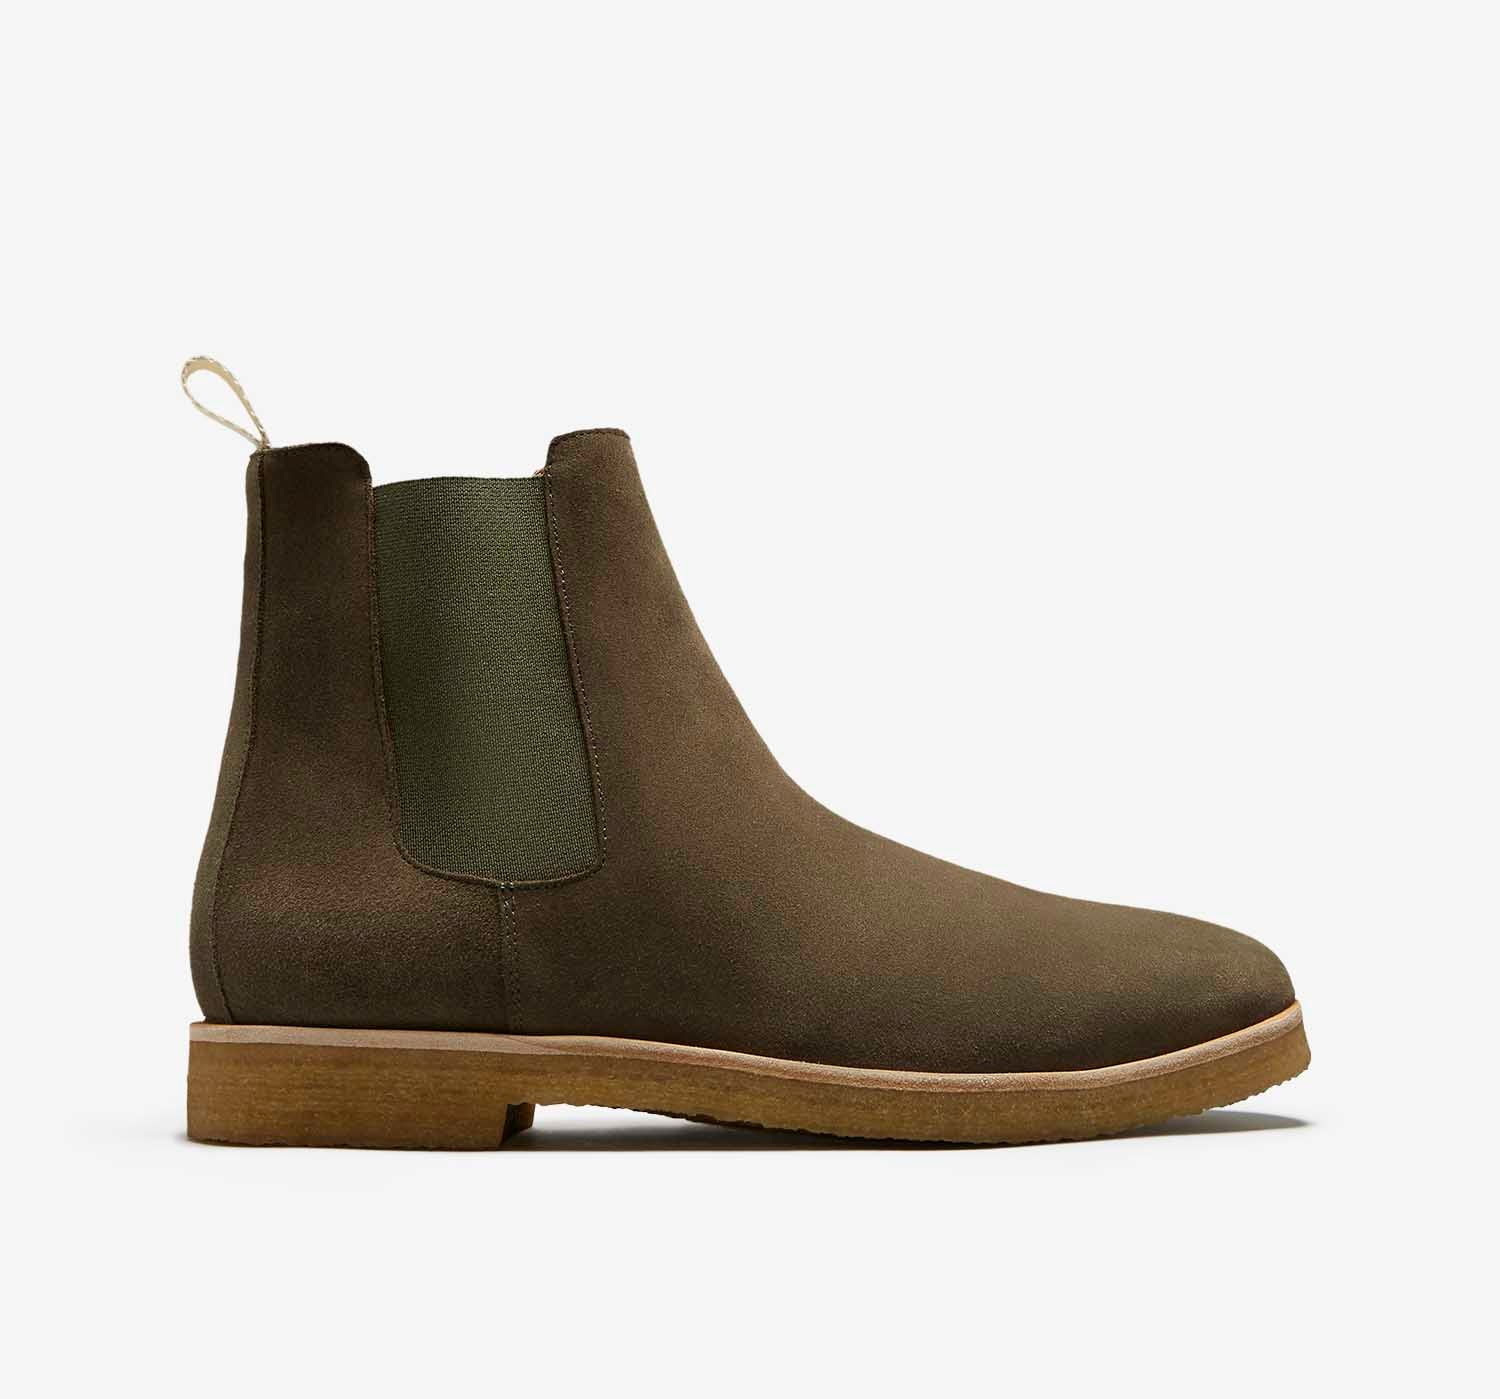 Chelsea Boot | Truffle by Oliver Cabell